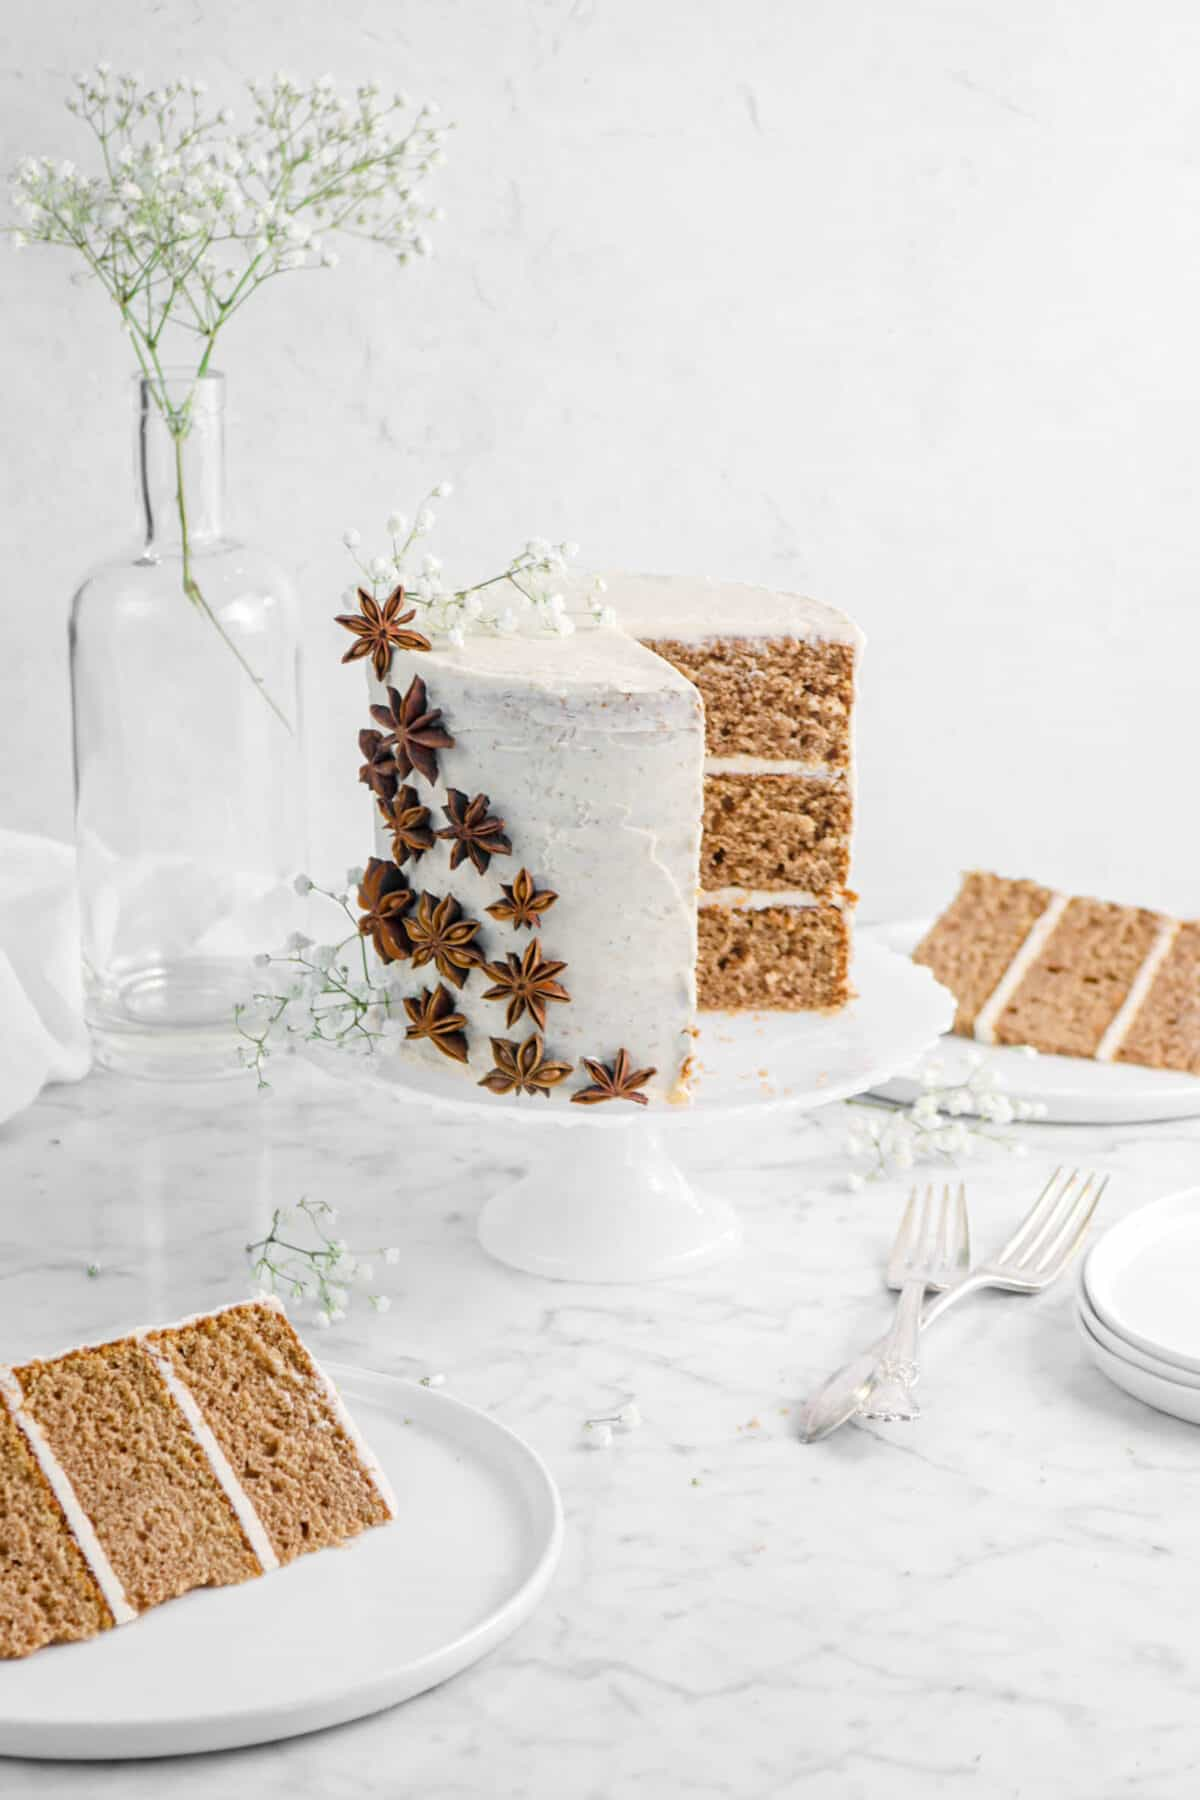 spice cake on white cake plate with slice slices, flowers, and star anise